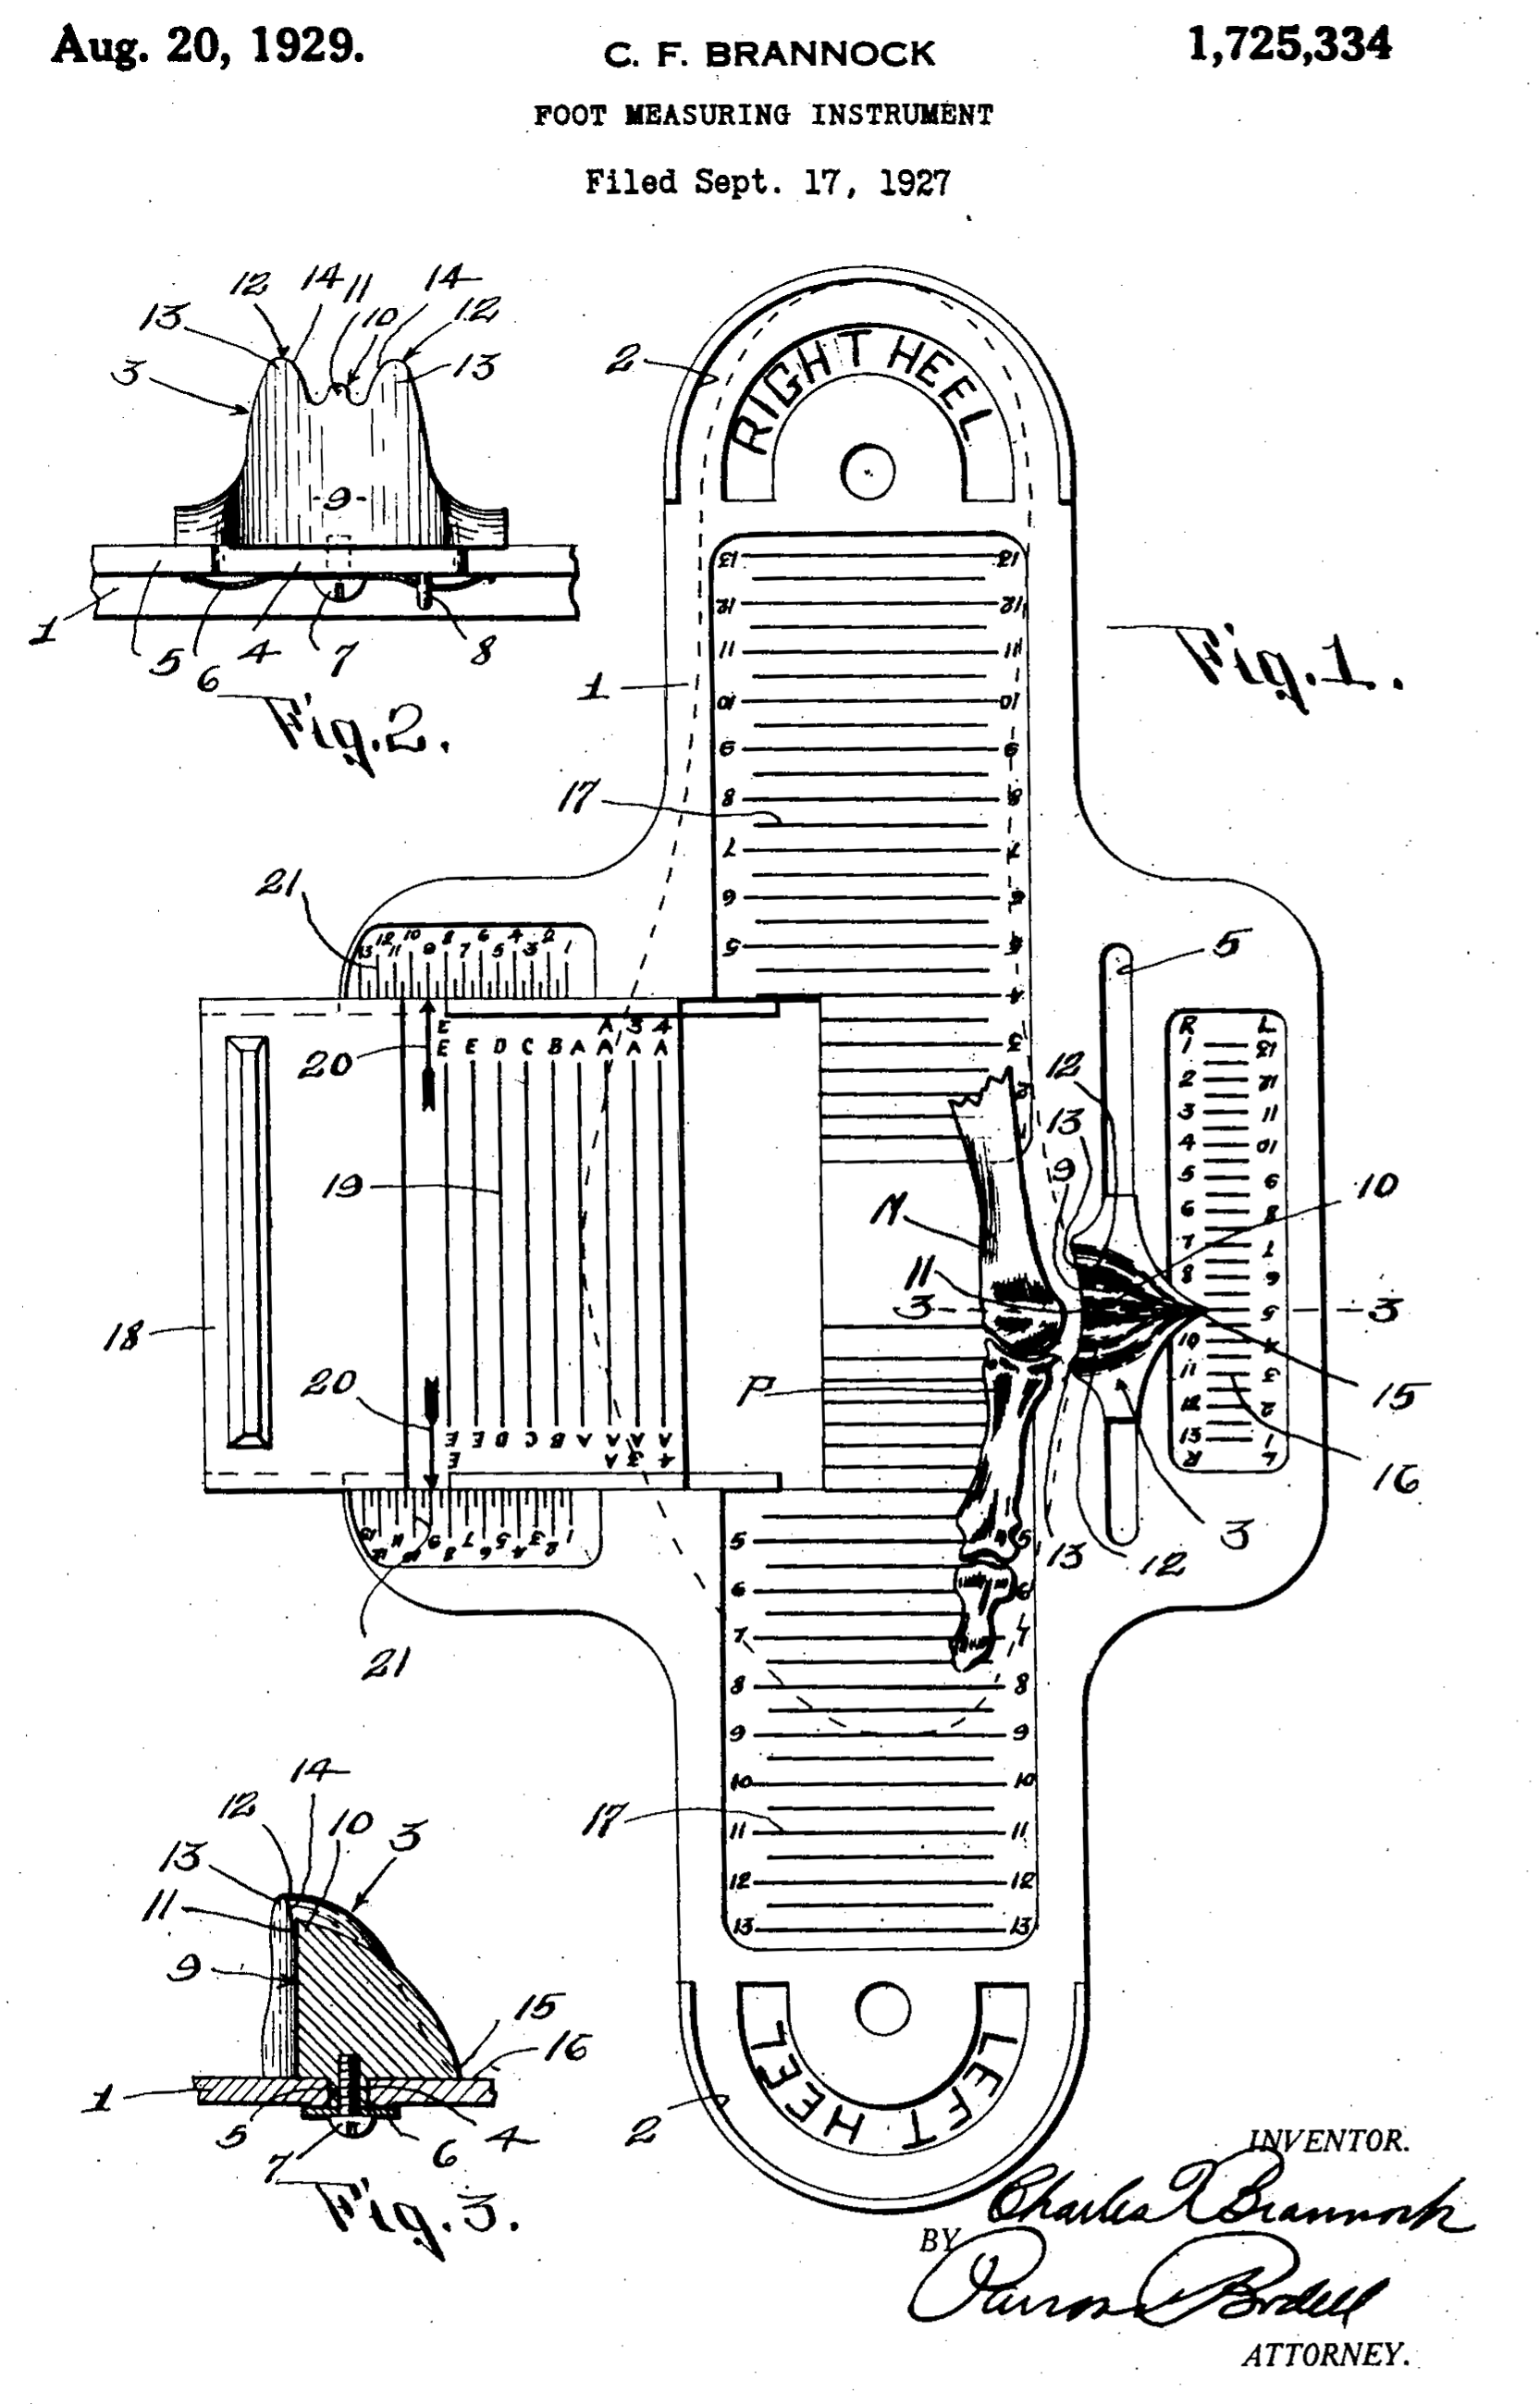 image regarding Printable Brannock Device titled Brannock Gadget - Wikipedia